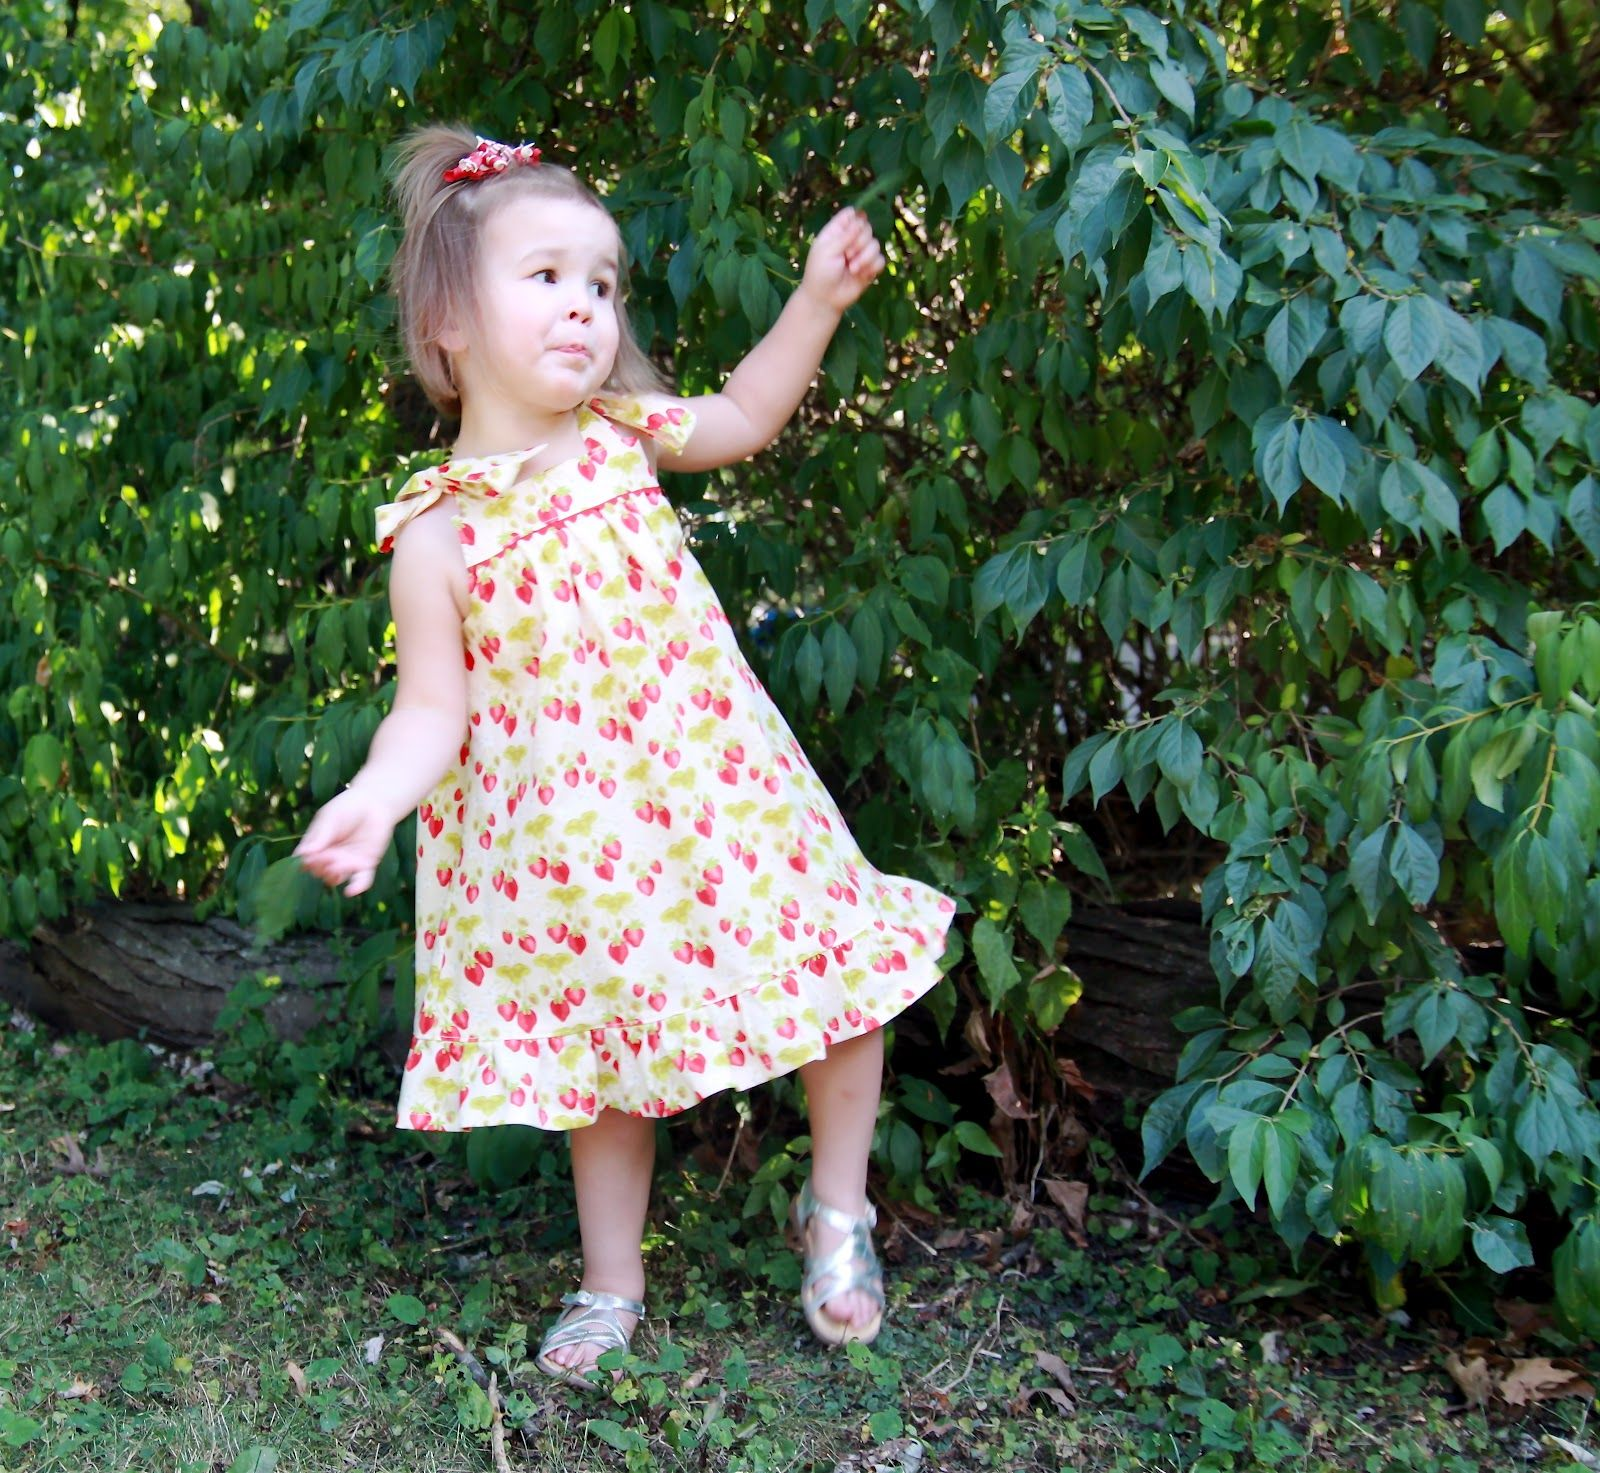 The Summer Picnic Dress Aka Little Linen Dress Has Taken Me Quite A While To Put Together For You Picnic Dress Baby Girl Outfits Summer Summer Dress Patterns [ 1473 x 1600 Pixel ]